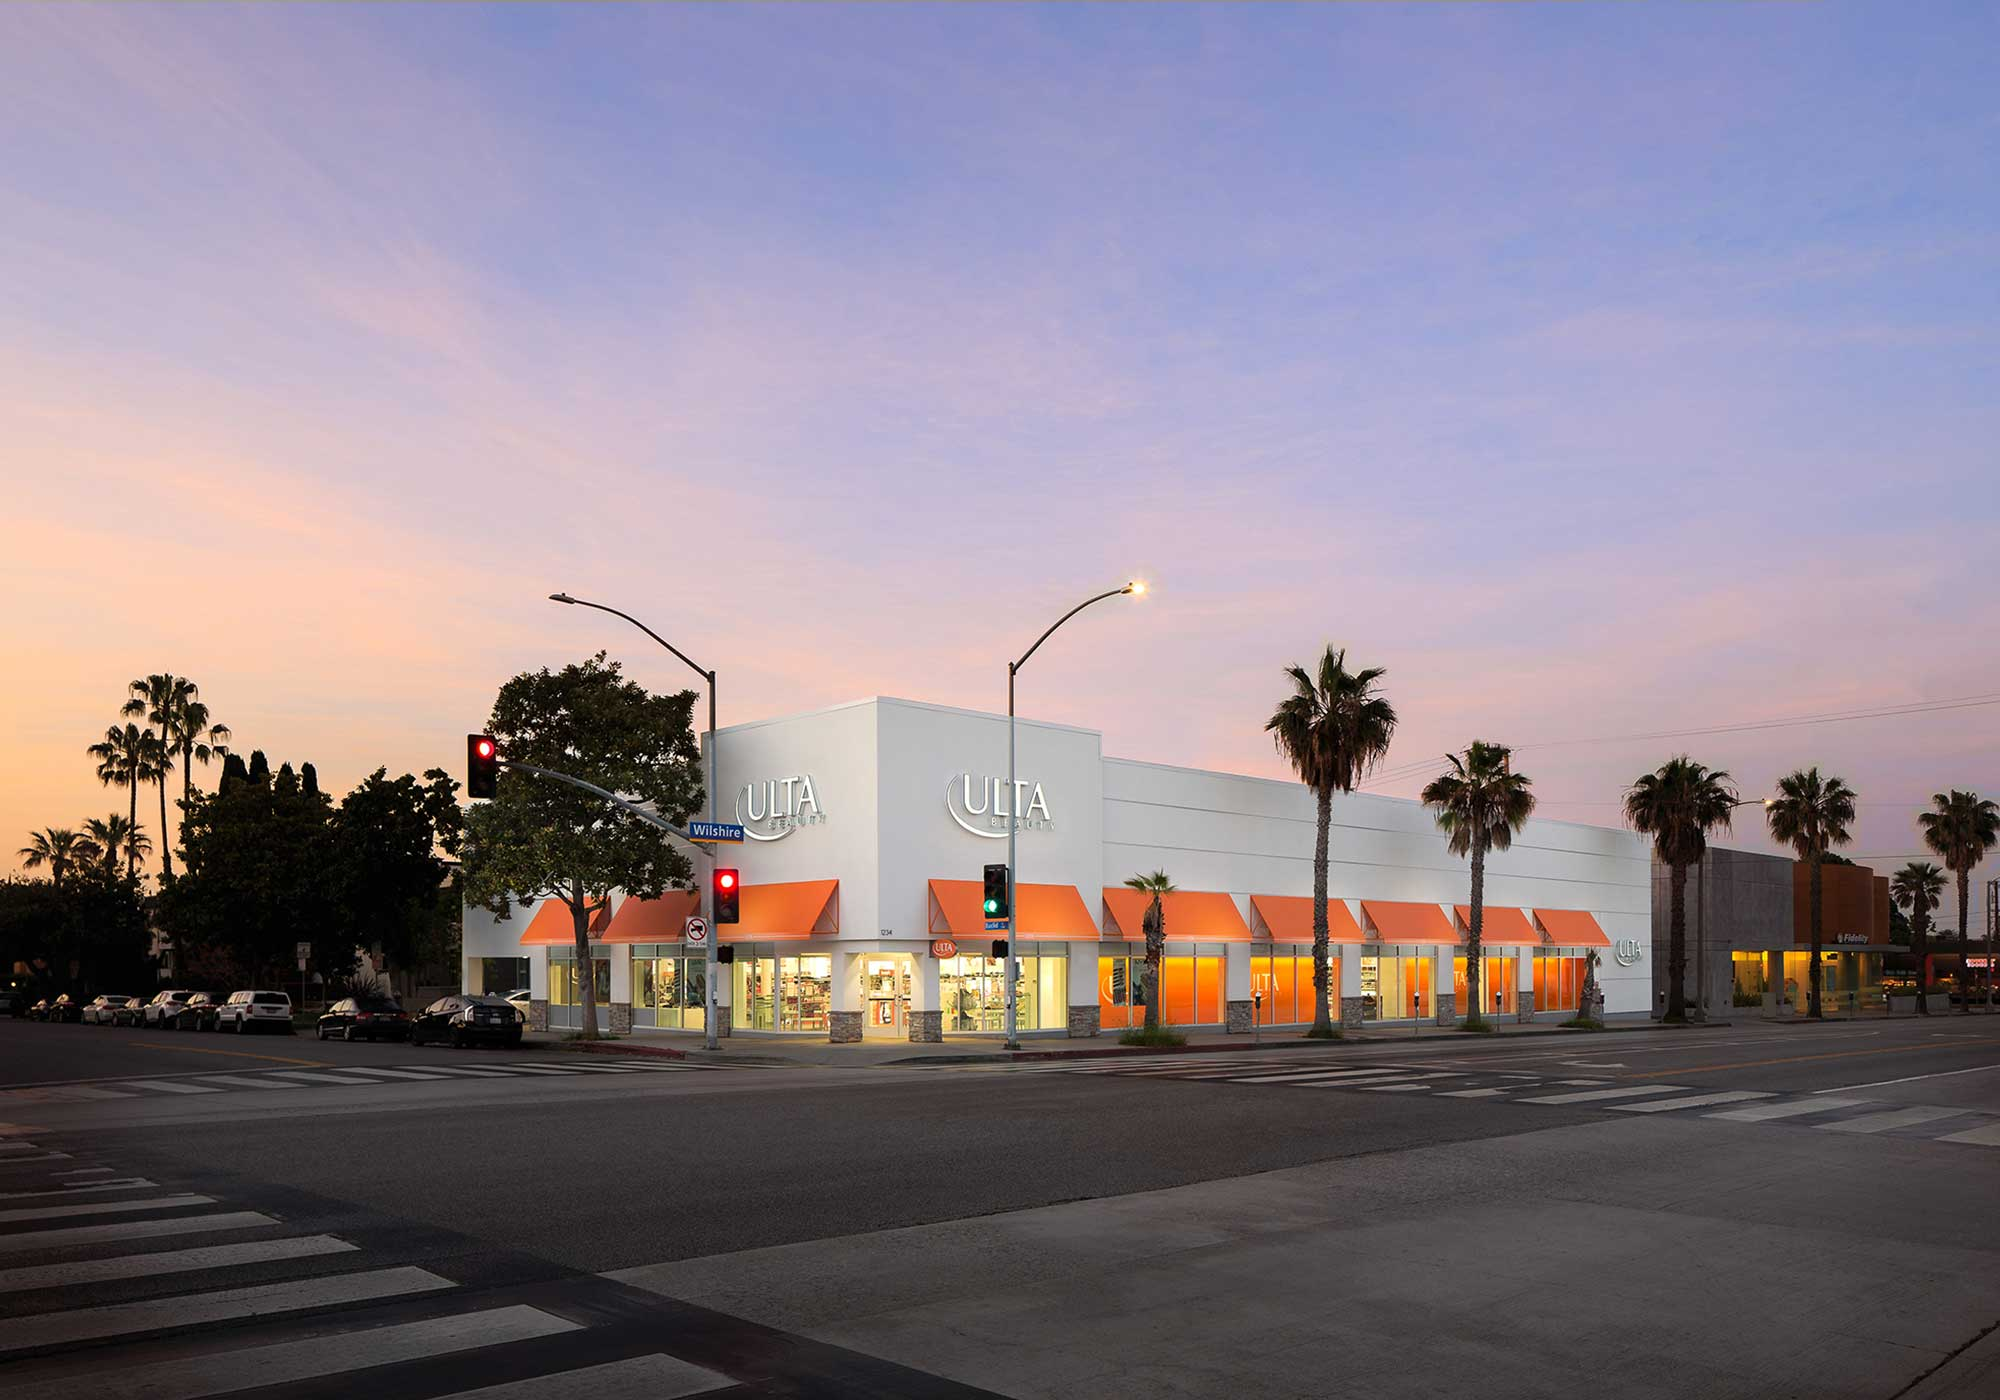 Los Angeles storefront with palm trees lining its perimeter